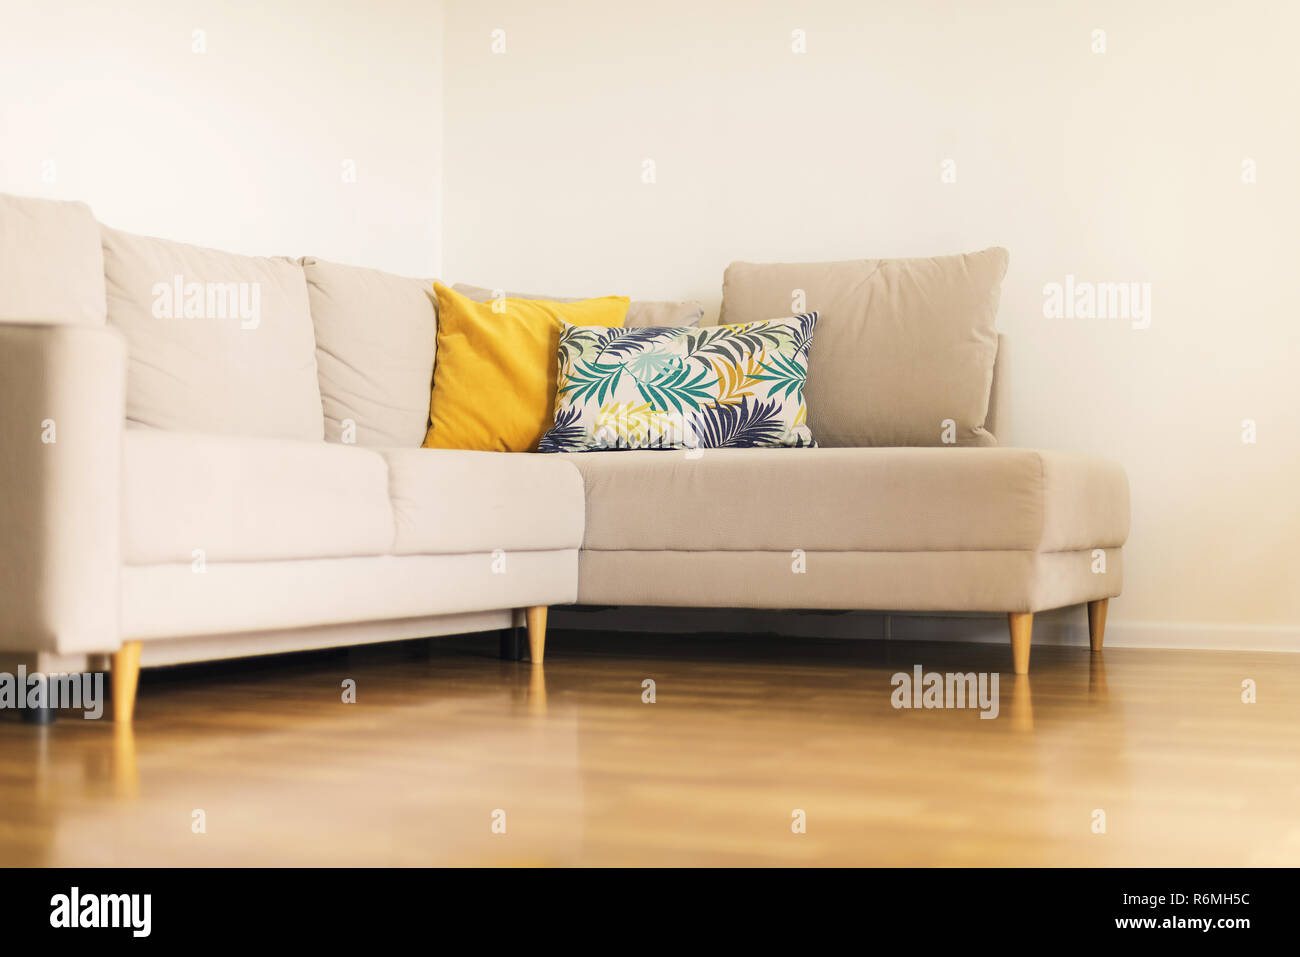 Outstanding Modern Beige Sofa Yellow And Blue Pillows With Tropical Bralicious Painted Fabric Chair Ideas Braliciousco